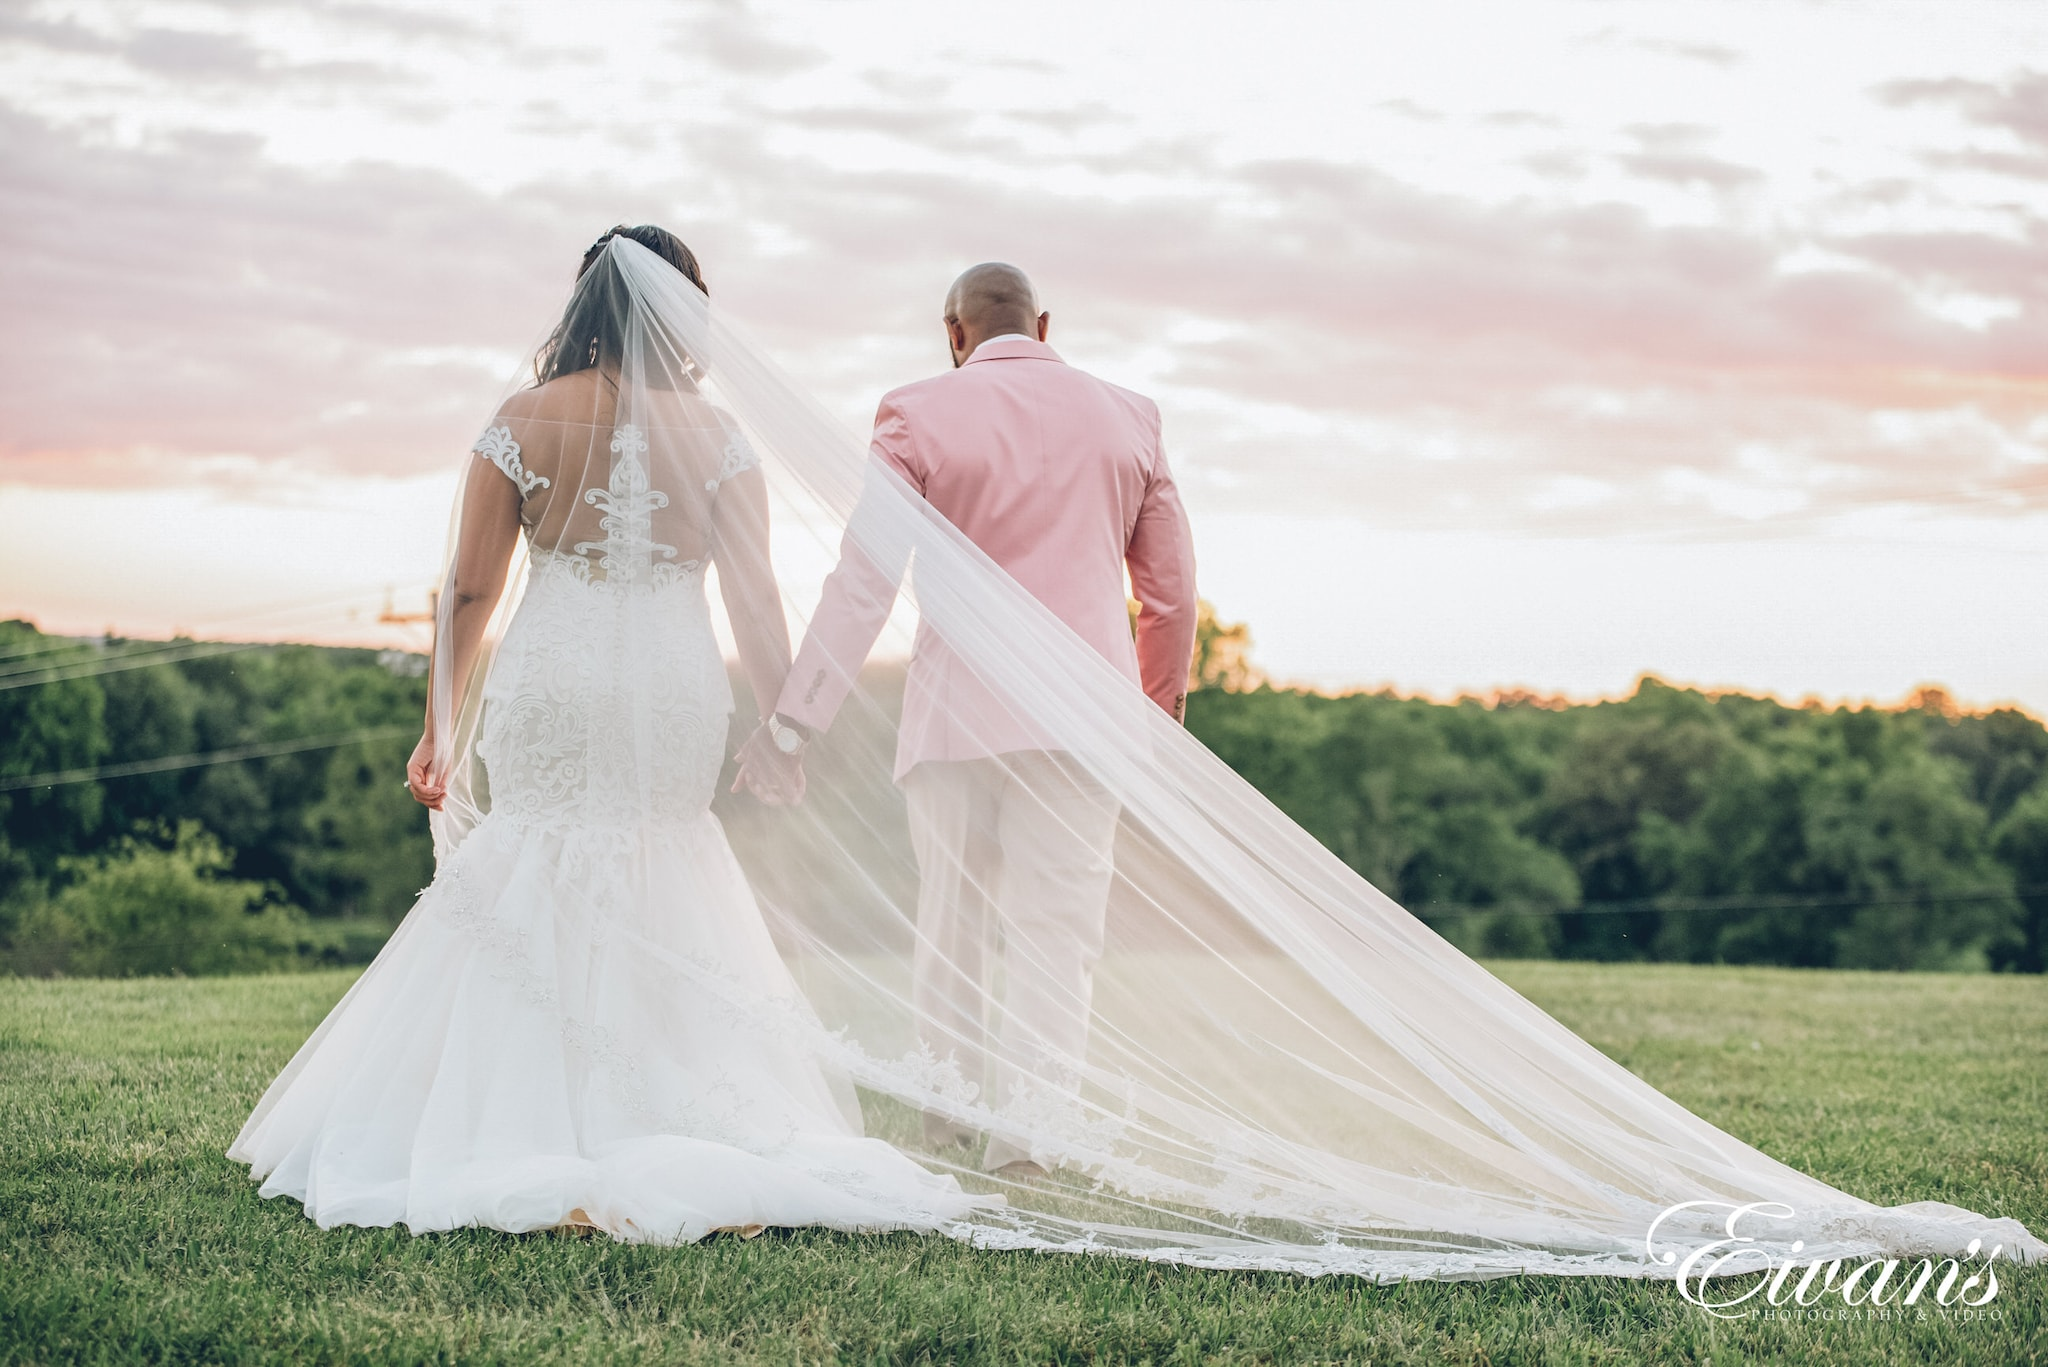 man and woman in wedding dress walking on green grass field during daytime